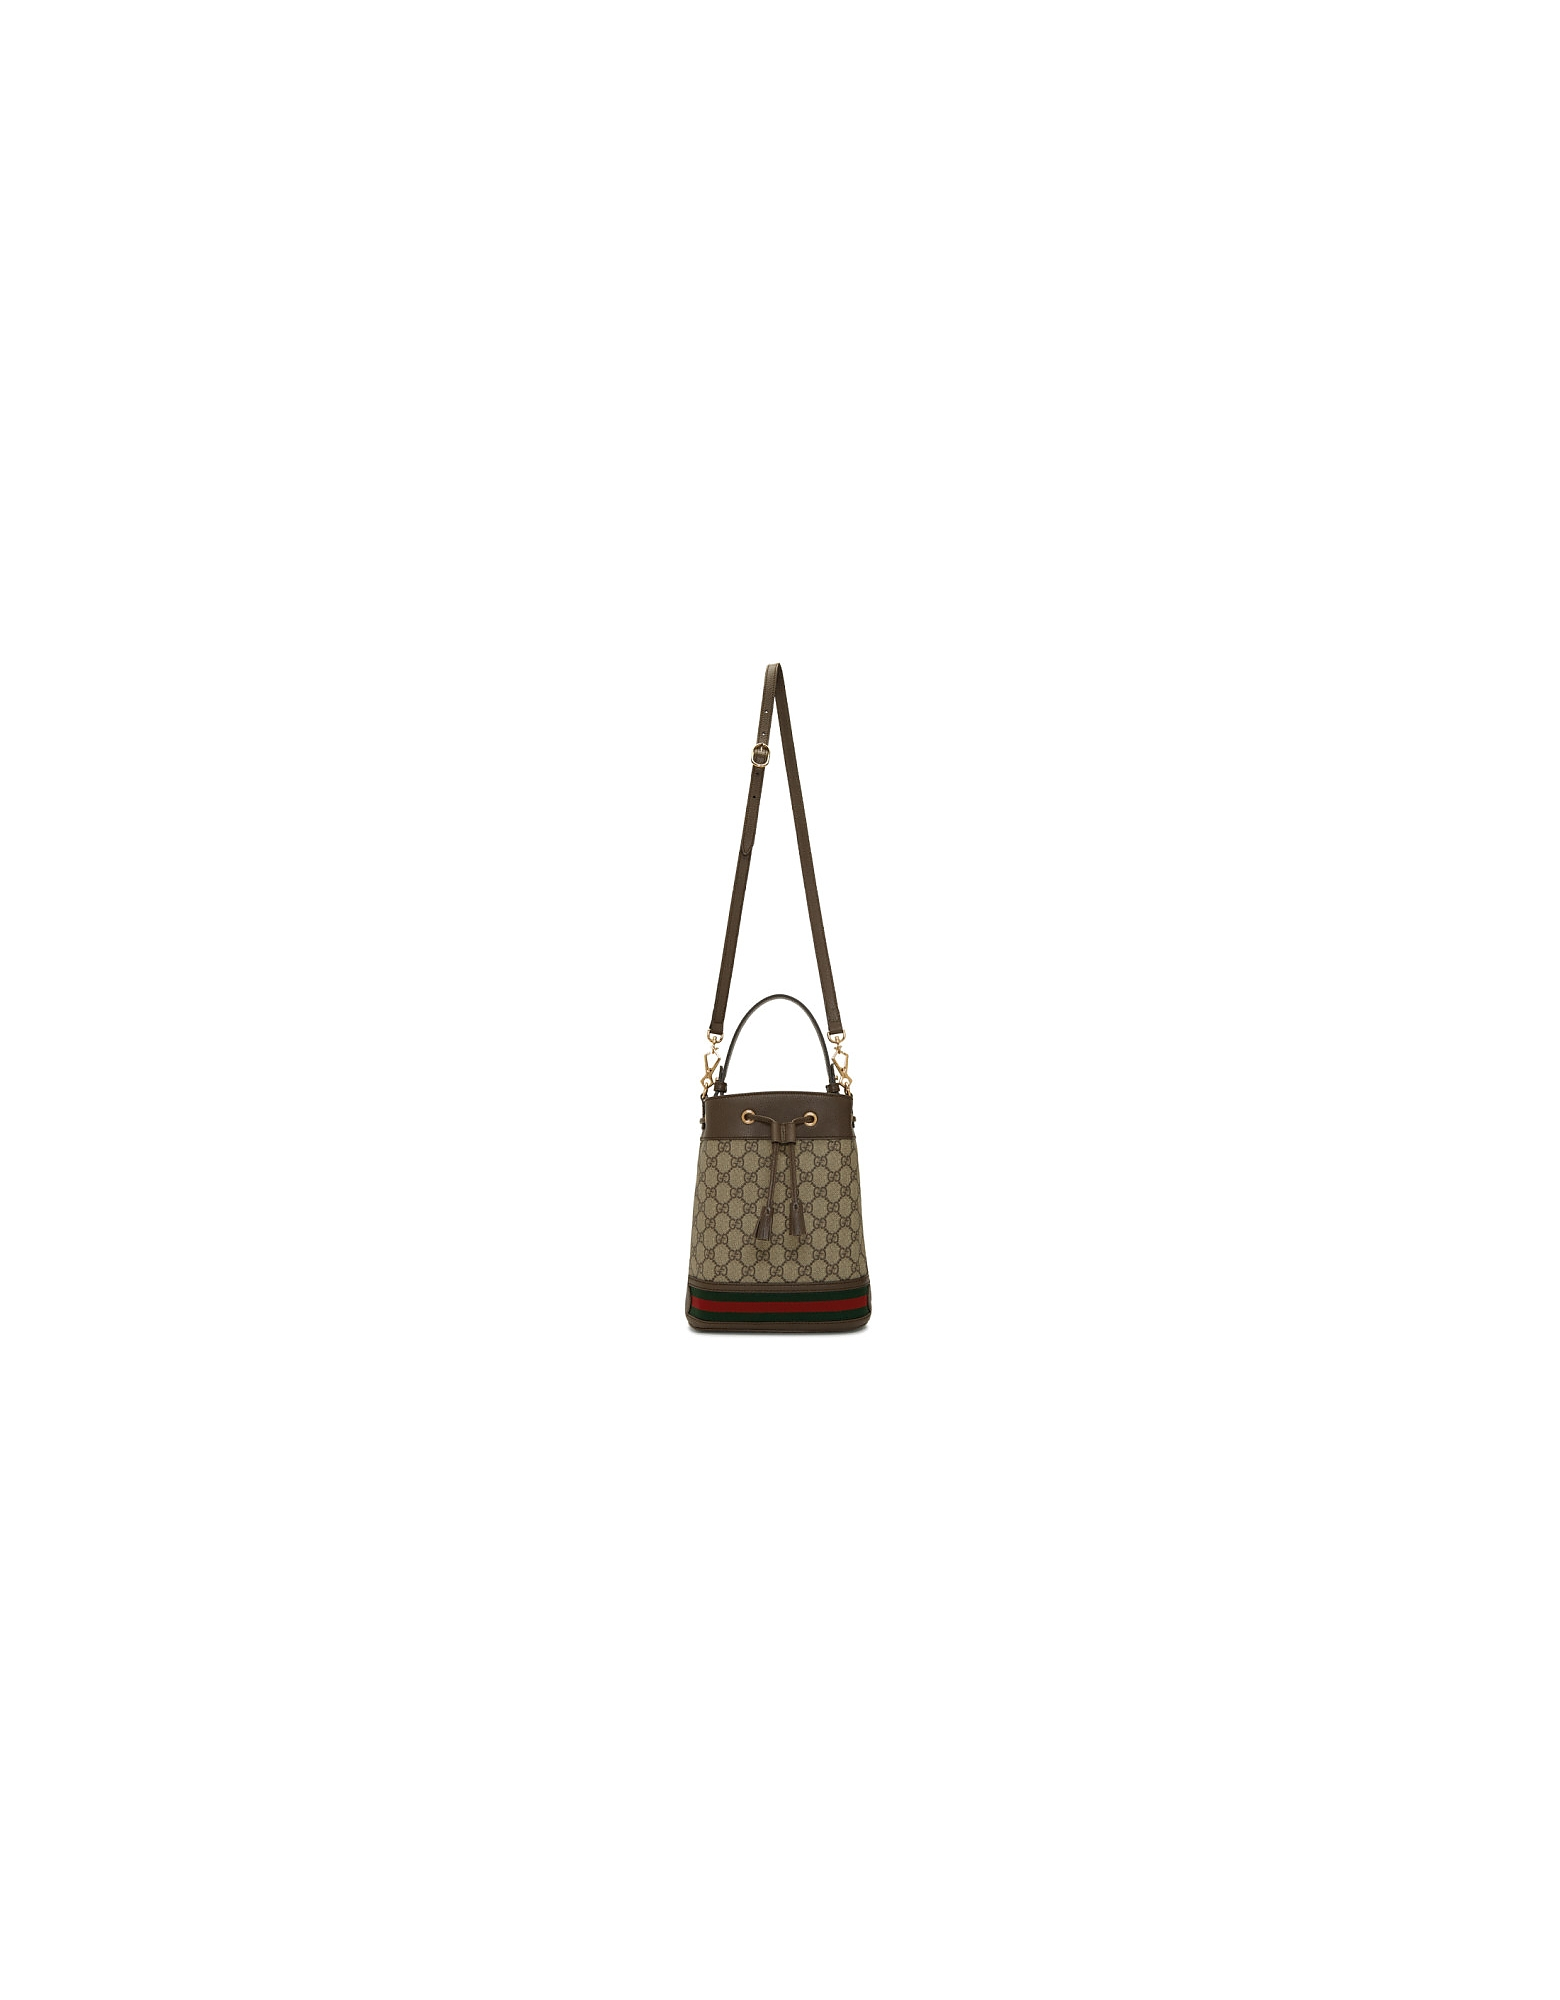 Gucci Designer Handbags, Beige GG Supreme Small Ophidia GG Bucket Bag